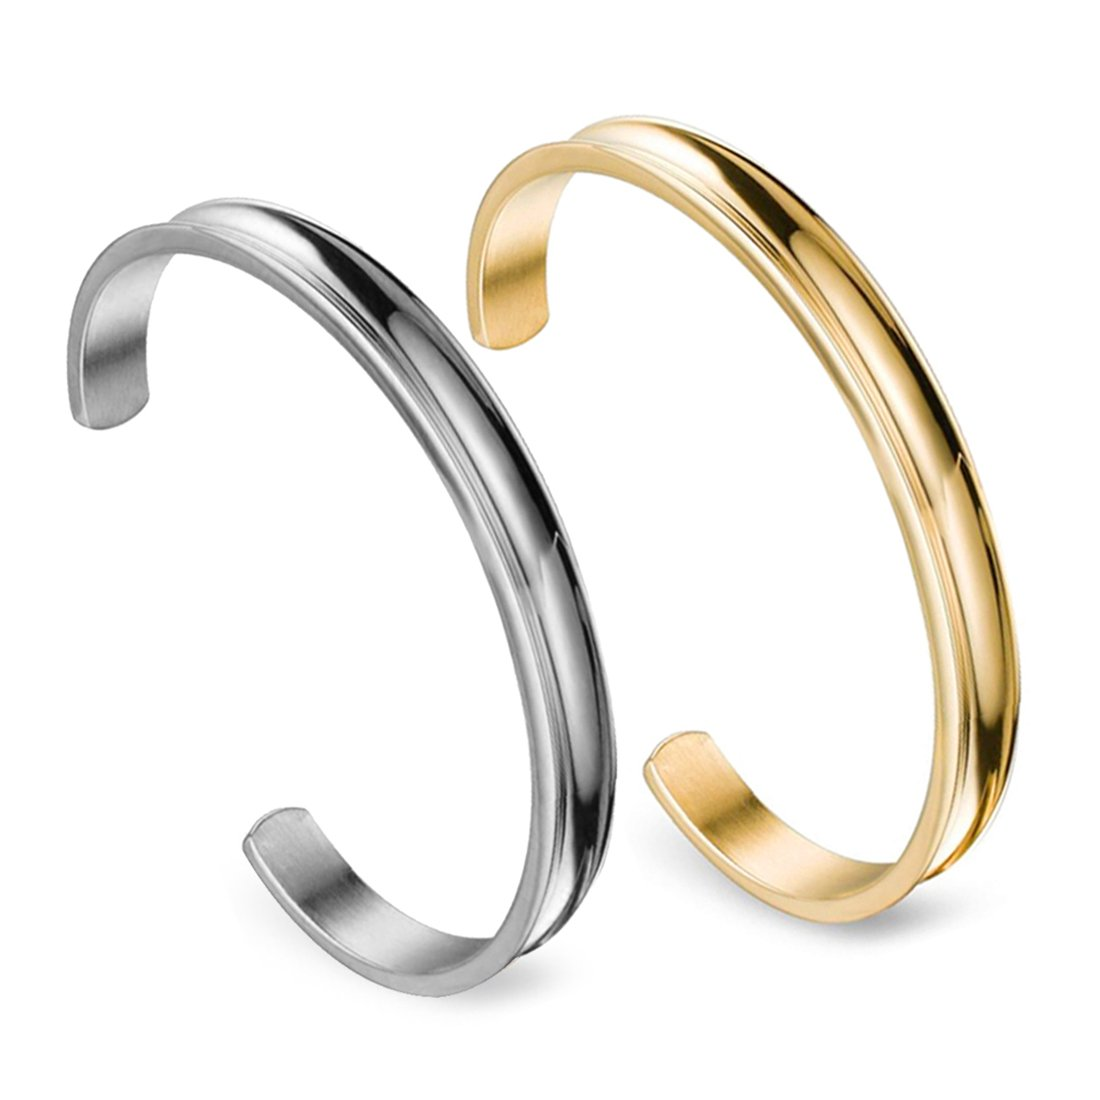 ZUOBAO Stainless Steel Bracelet Grooved Cuff Bangle for Women Girls (Silver+Gold)